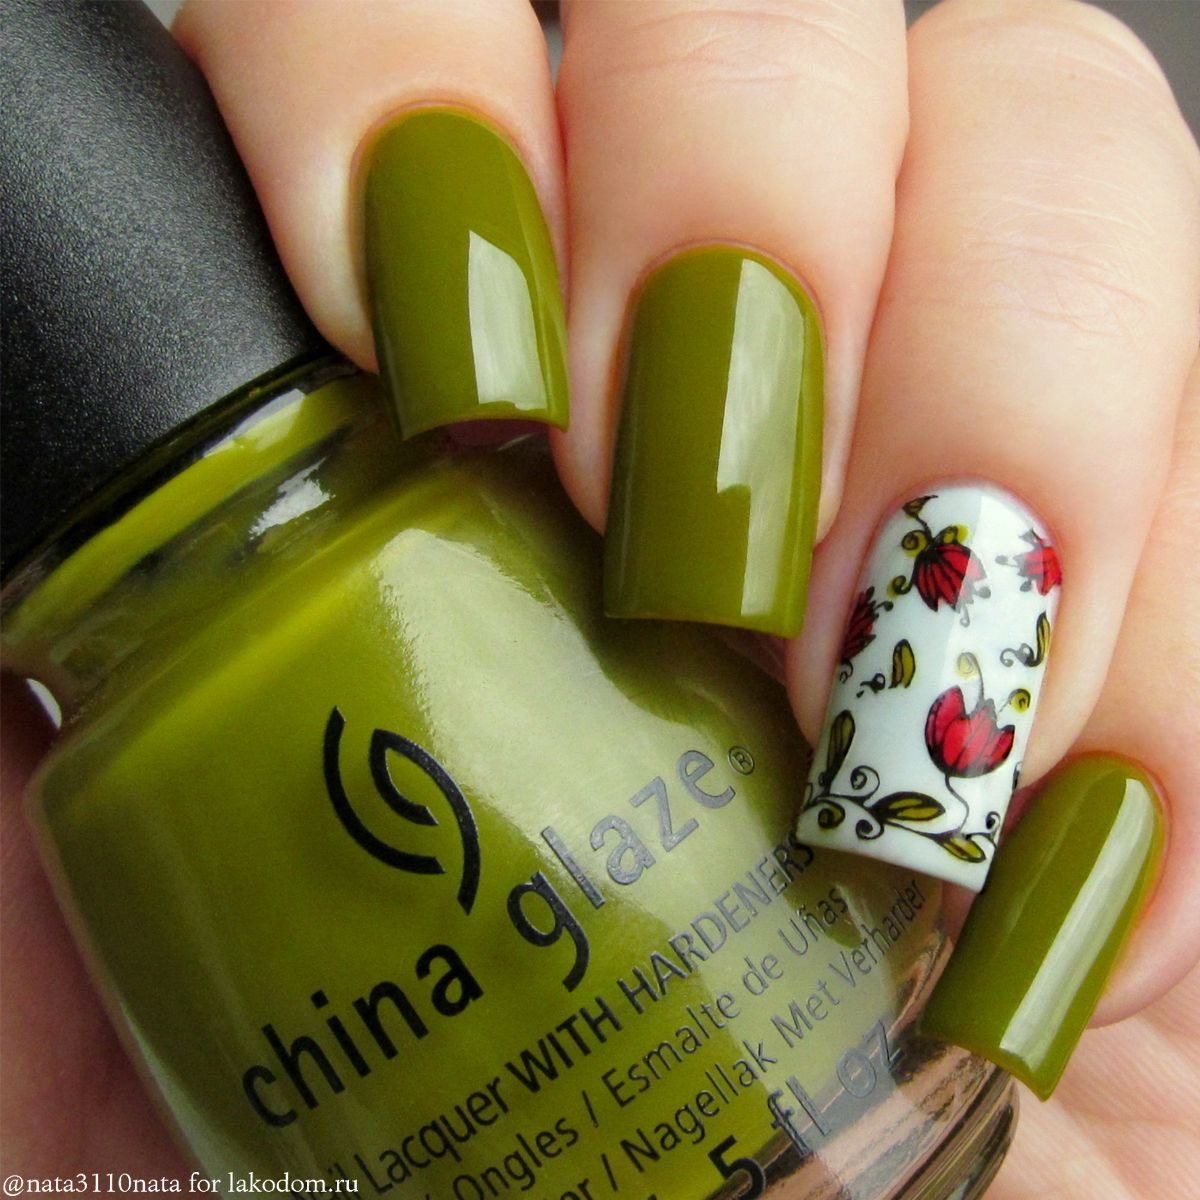 i love this green color | verdes | Pinterest | Diseños de uñas, Arte ...